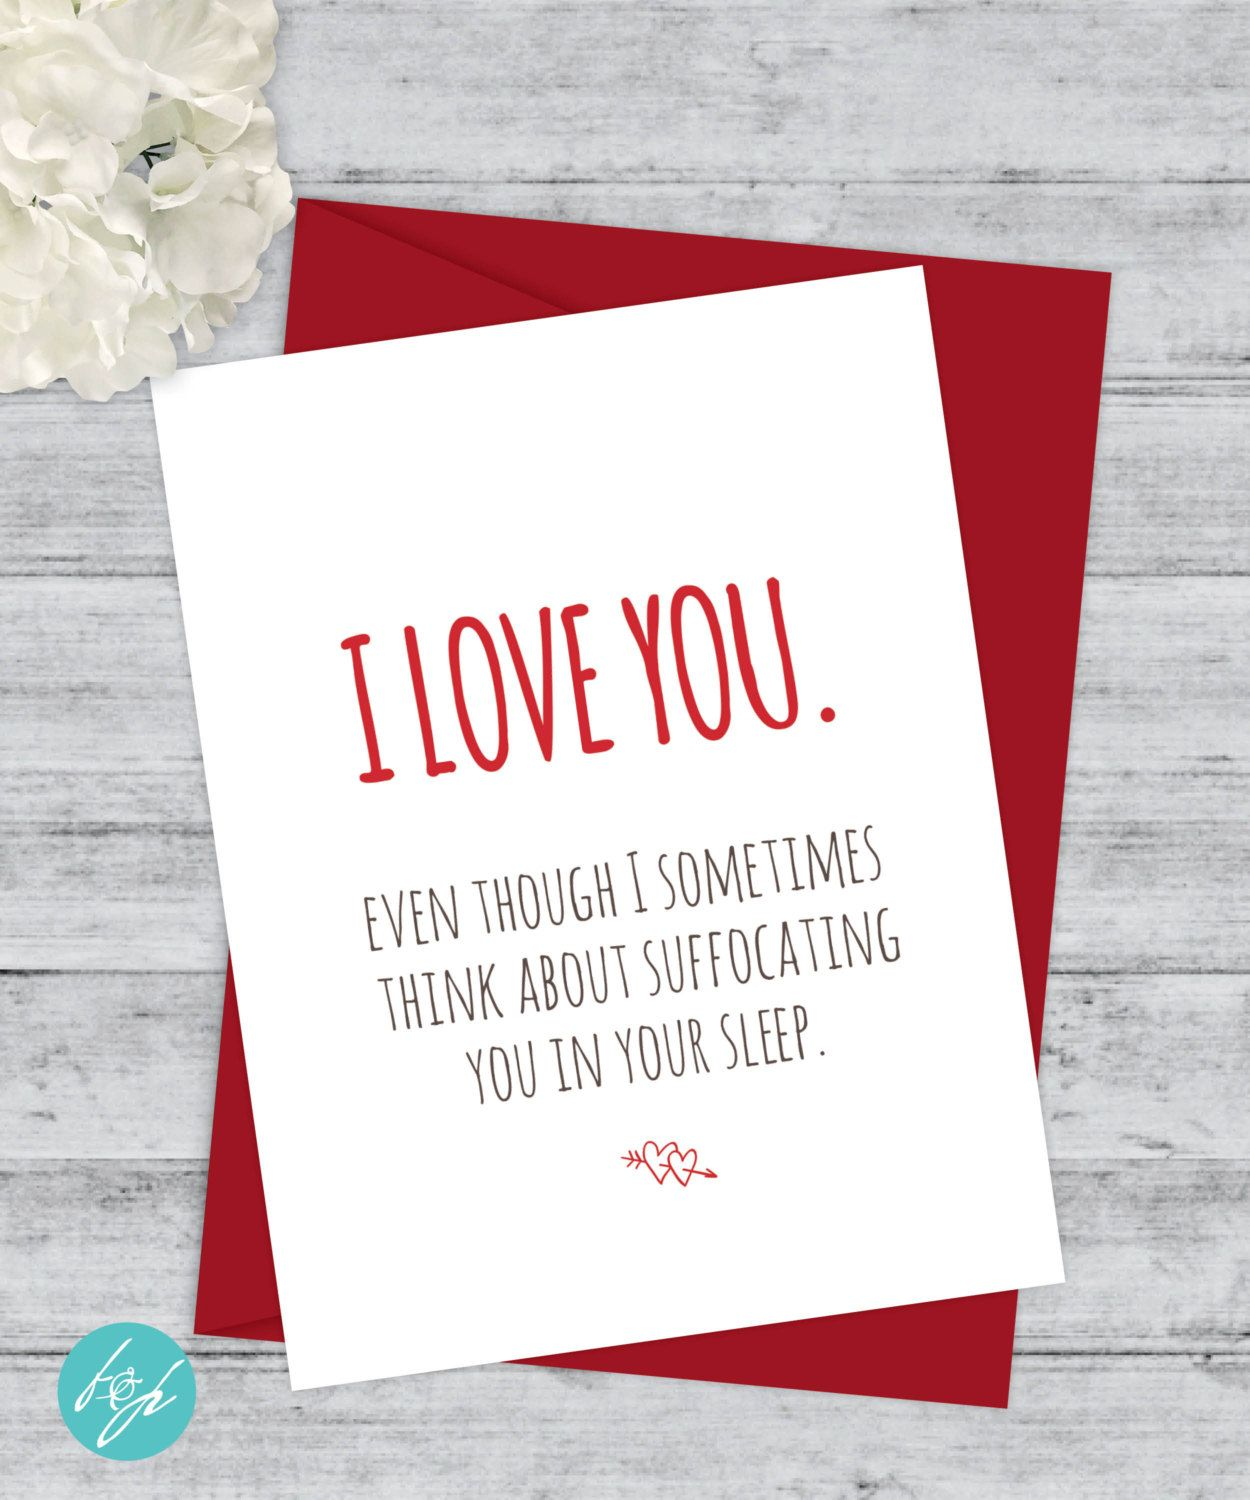 Funny valentines day card i love you even though i think about boyfriend card funny birthday anniversary funny card quirky snarky greeting card girlfriend card i love you card suffocating kristyandbryce Images